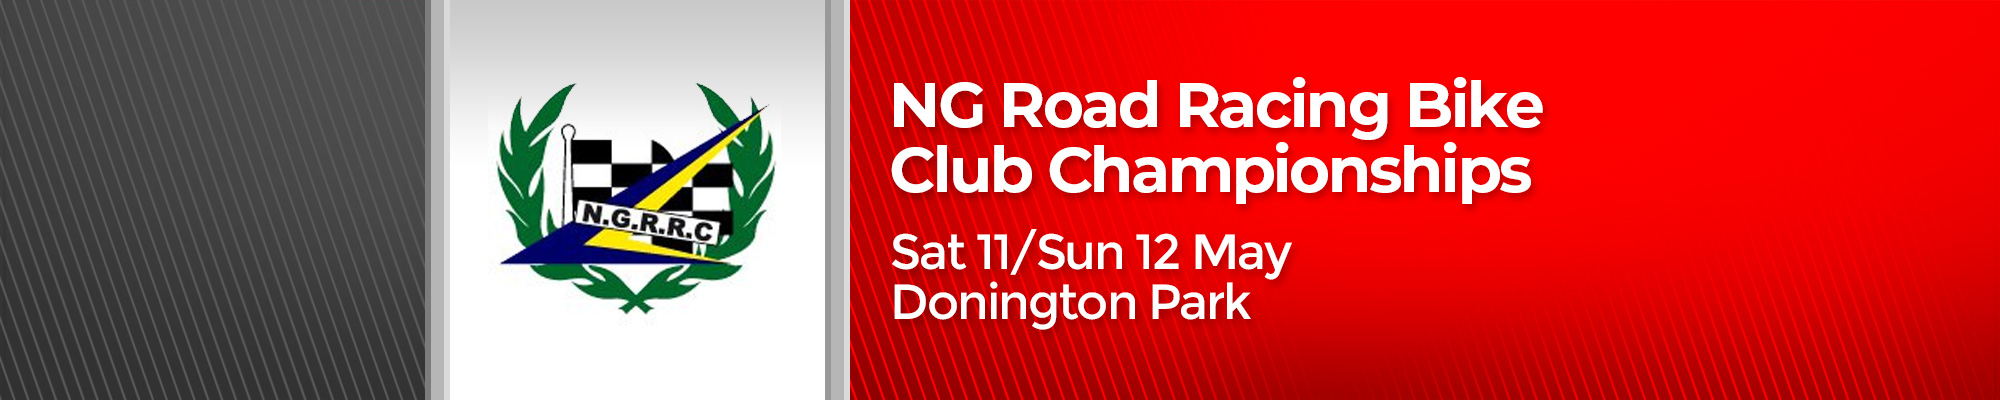 NG Road Racing Club Bike Championships